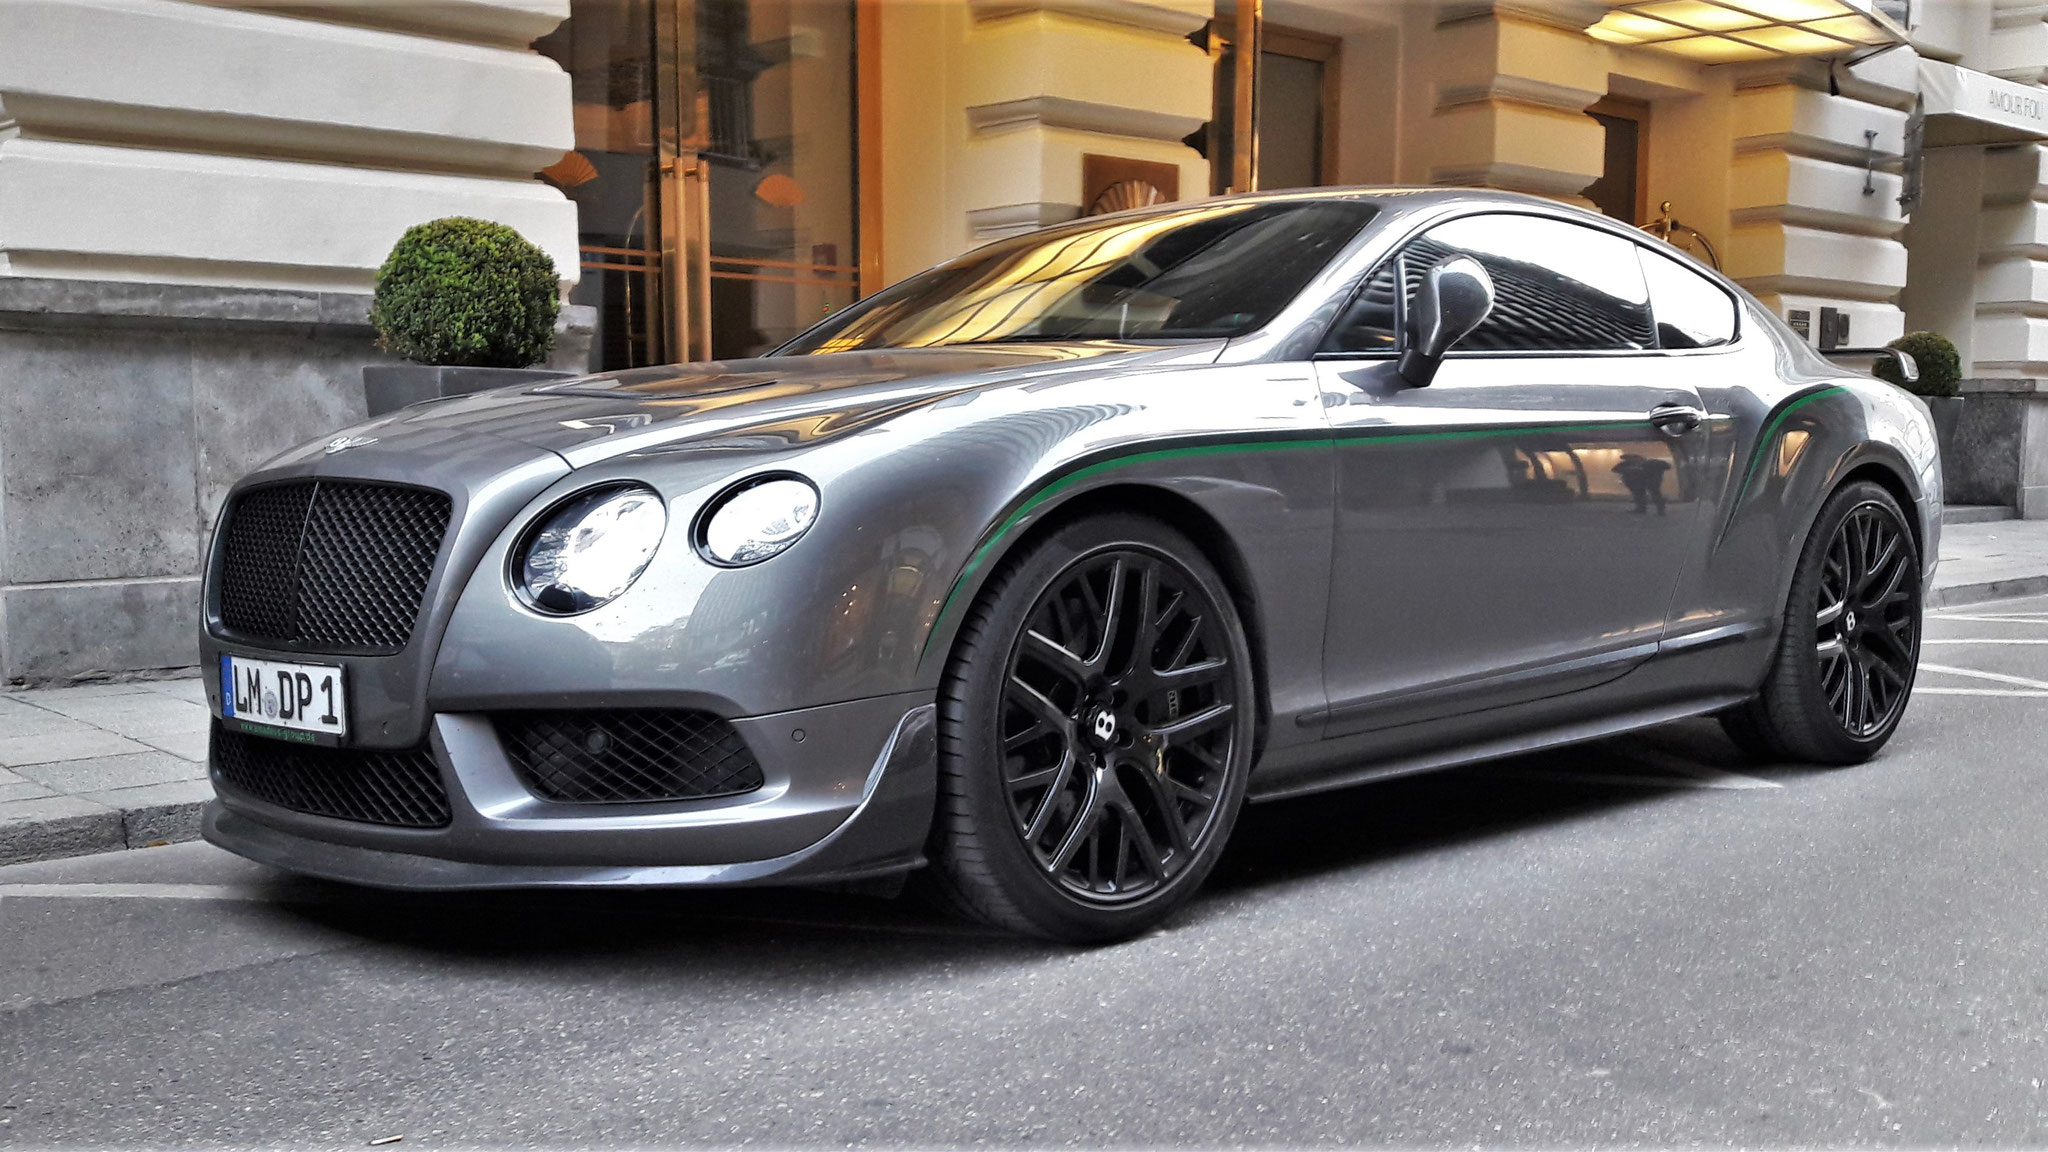 Bentley Continental GT3 R - LM-DP-1